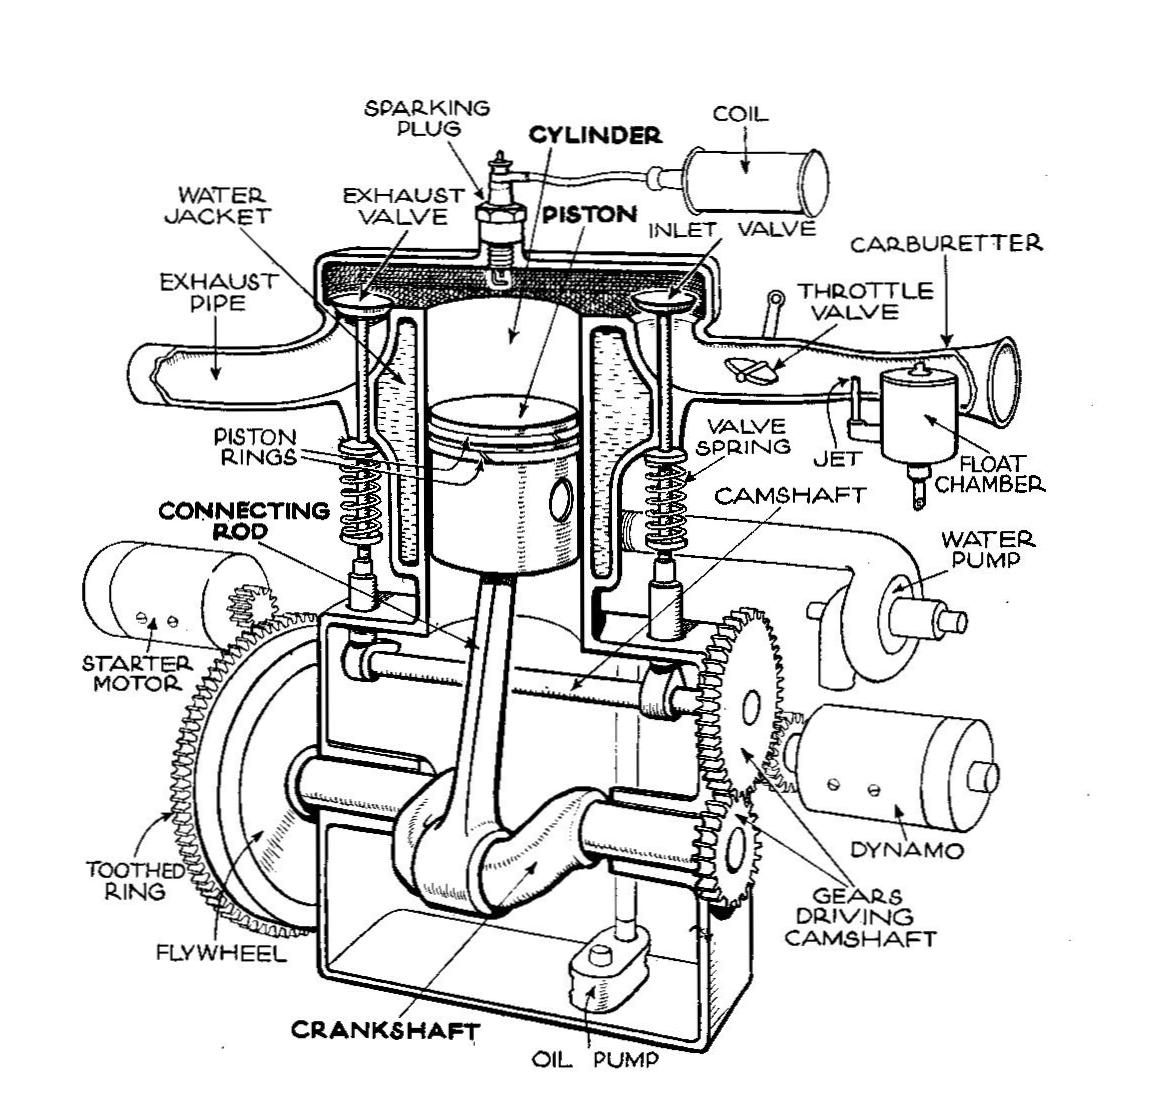 Flathead drawings engines likewise T9373542 Am looking engine besides P 0900c152800717d4 additionally Chevy 350 Custom Forged Pistons 10 6 C R Balanced Kit 350n as well 730. on ford engine connecting rod